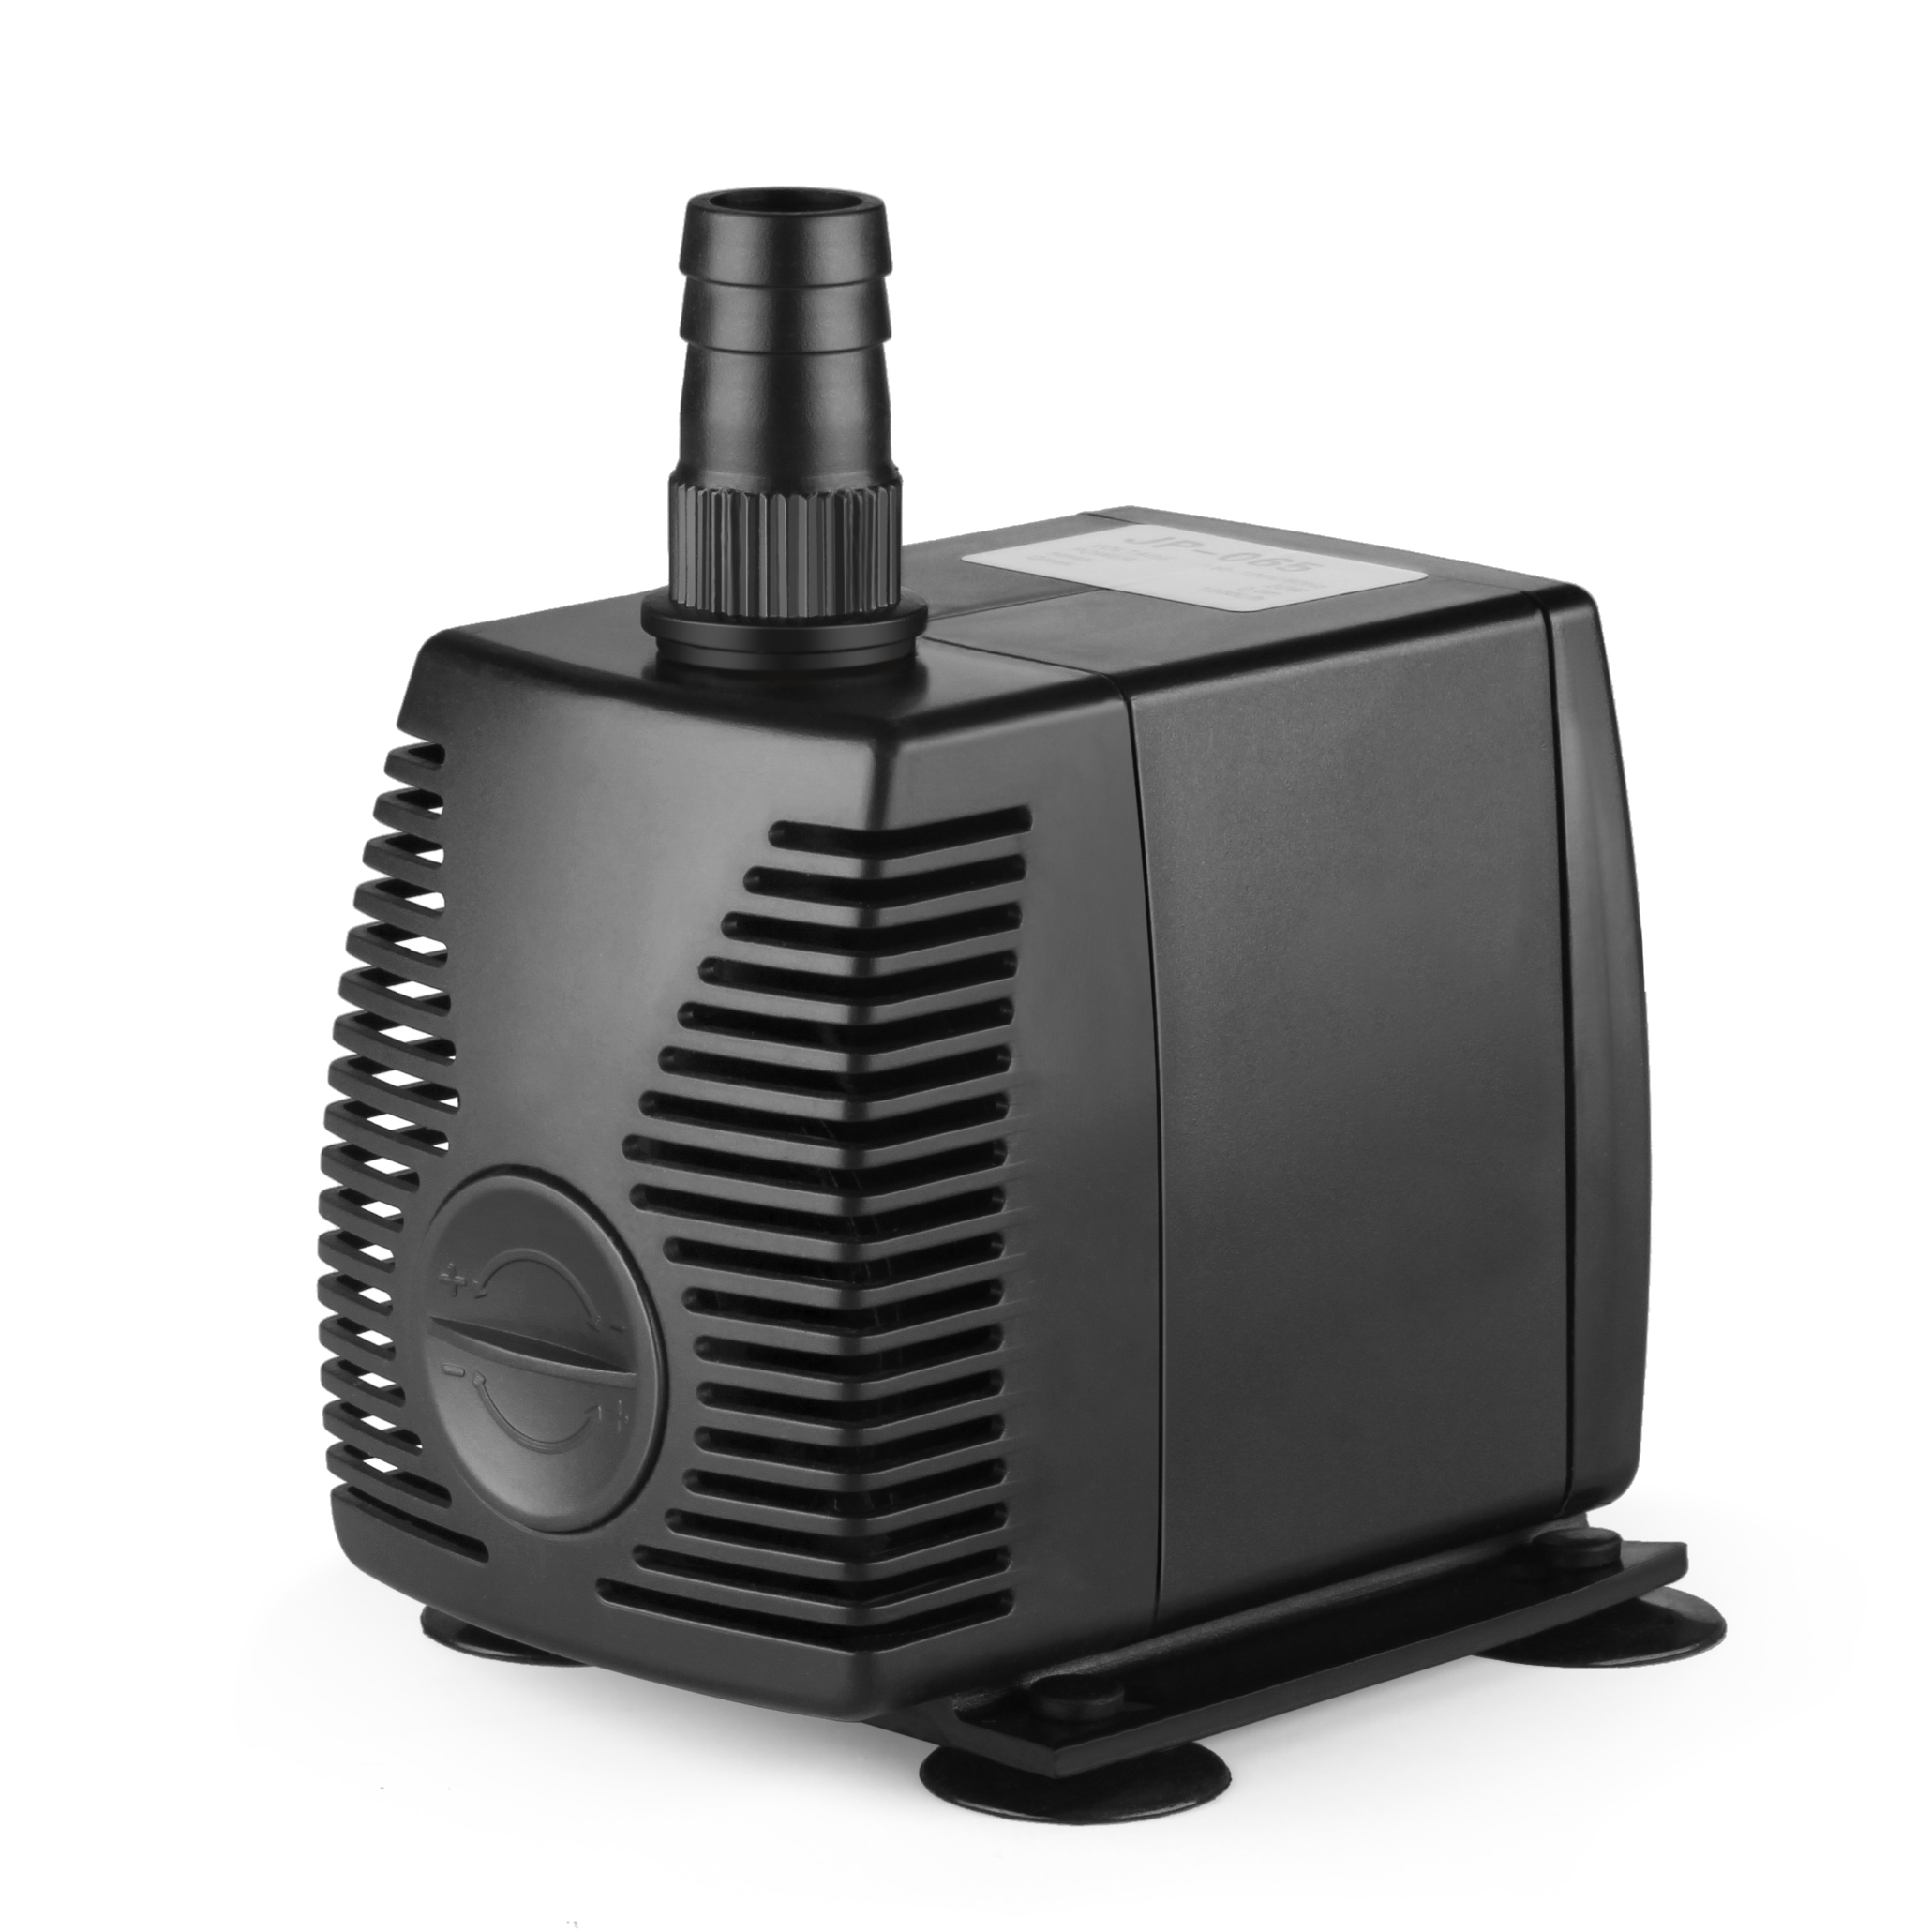 Submersible Water Pump Powerhead 320 GPH with Adjustable Flow Rate Suction Cup Mount for Aquarium Fish Tank Fountain Pond Spout Statuary Hydroponic System